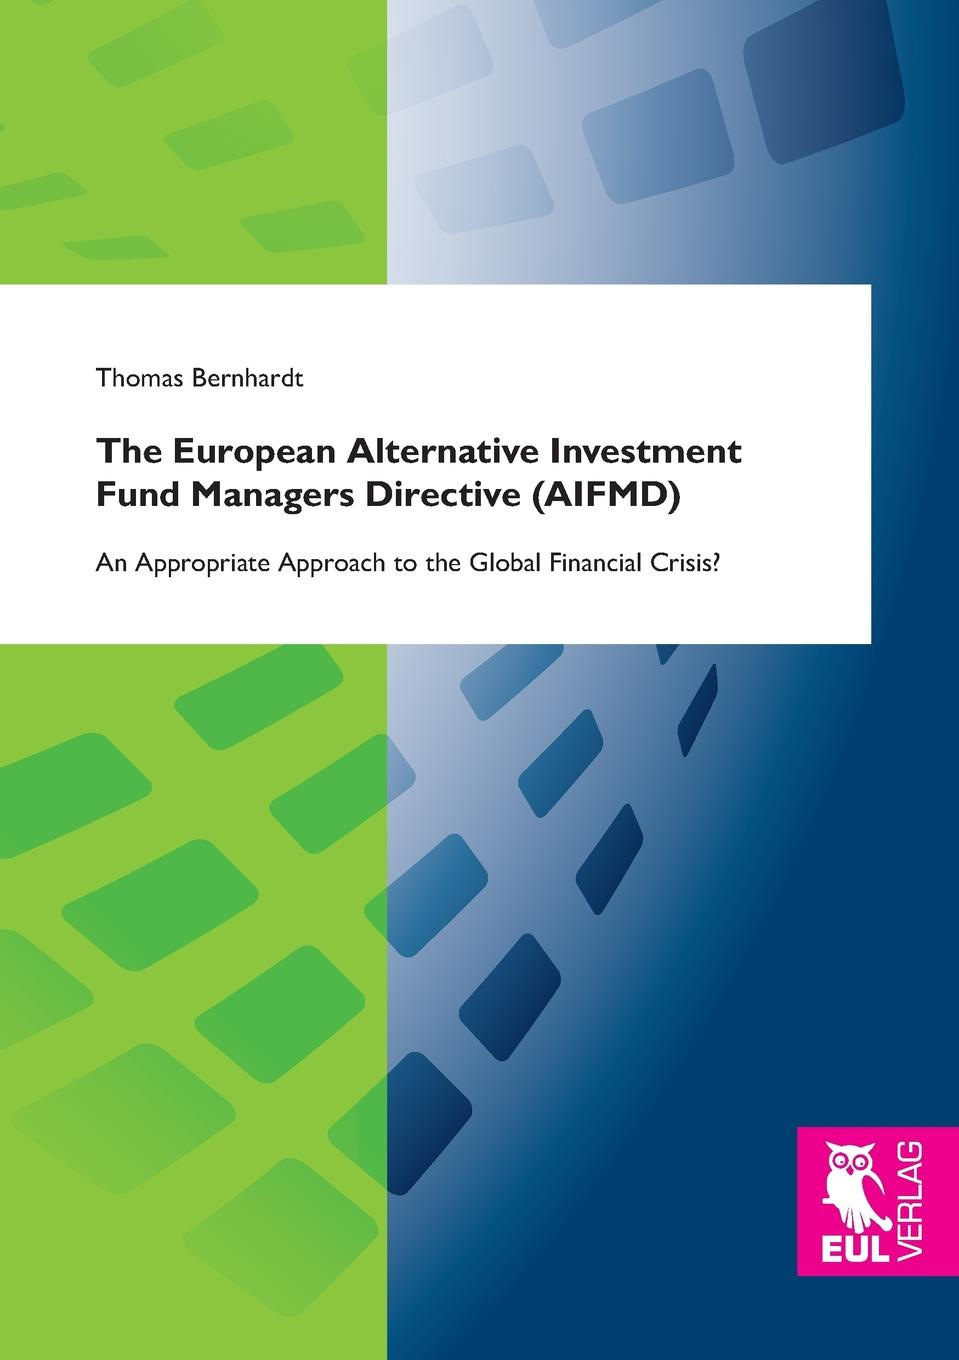 Thomas Bernhardt The European Alternative Investment Fund Managers Directive (Aifmd) frank fabozzi j investing in mortgage backed and asset backed securities financial modeling with r and open source analytics